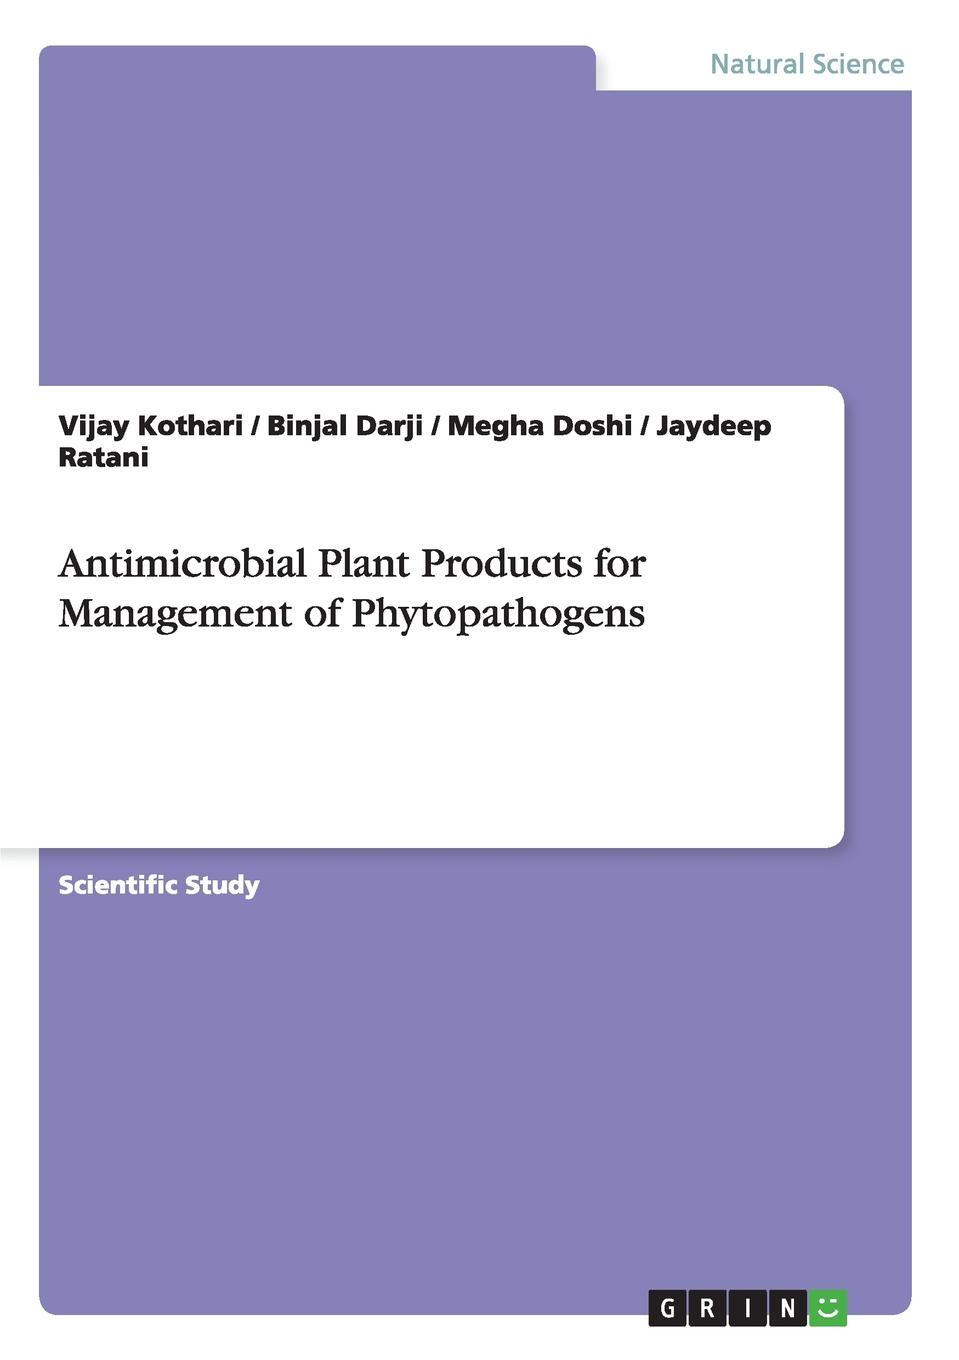 Vijay Kothari, Binjal Darji, Megha Doshi Antimicrobial Plant Products for Management of Phytopathogens production of polyclonal antibodies against scorpion venom